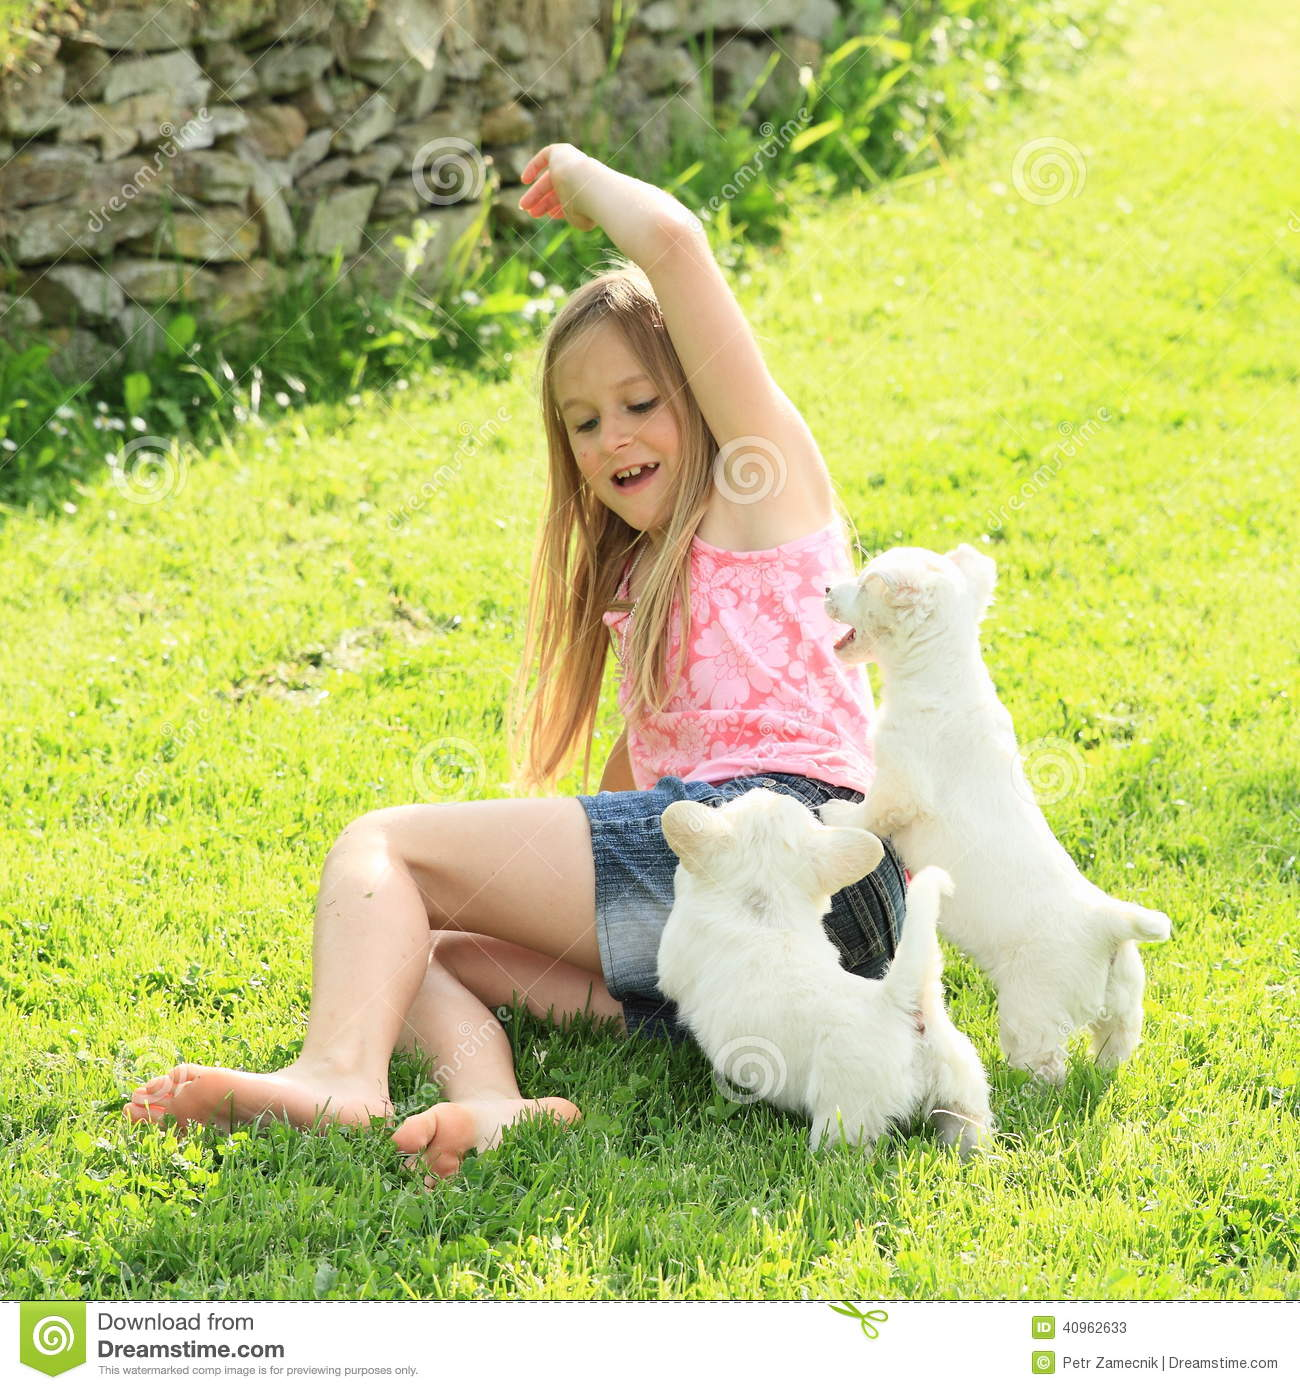 https://thumbs.dreamstime.com/z/little-girl-playing-two-puppies-pink-t-shirt-blue-shorts-bare-feet-white-green-meadow-40962633.jpg